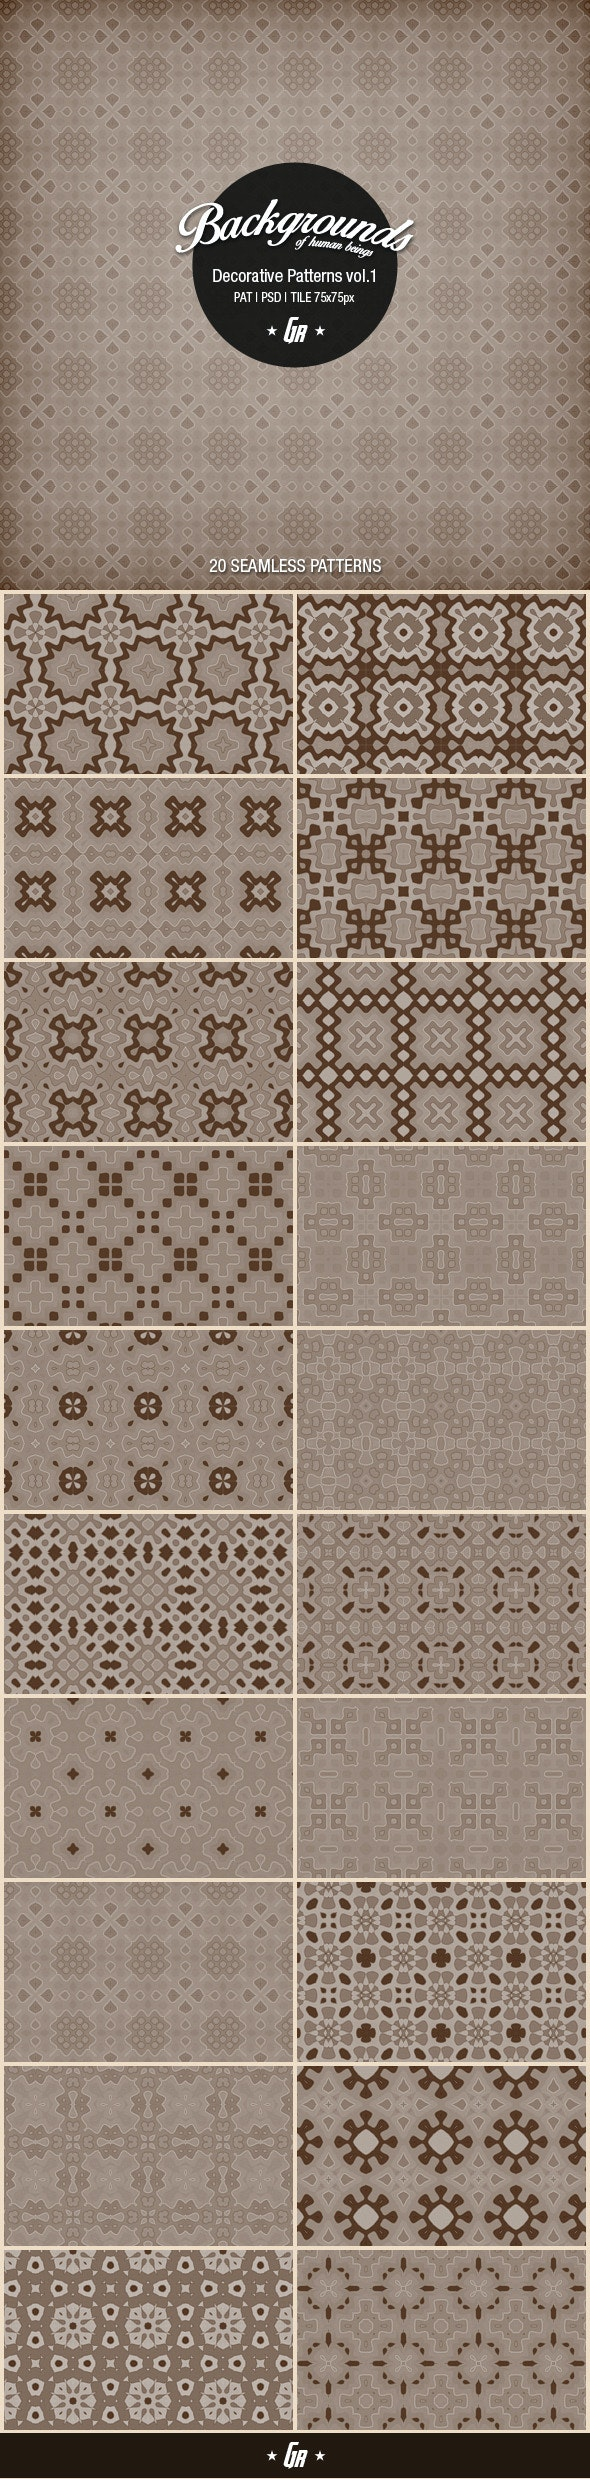 Decorative Patterns Vol.1 - Abstract Textures / Fills / Patterns